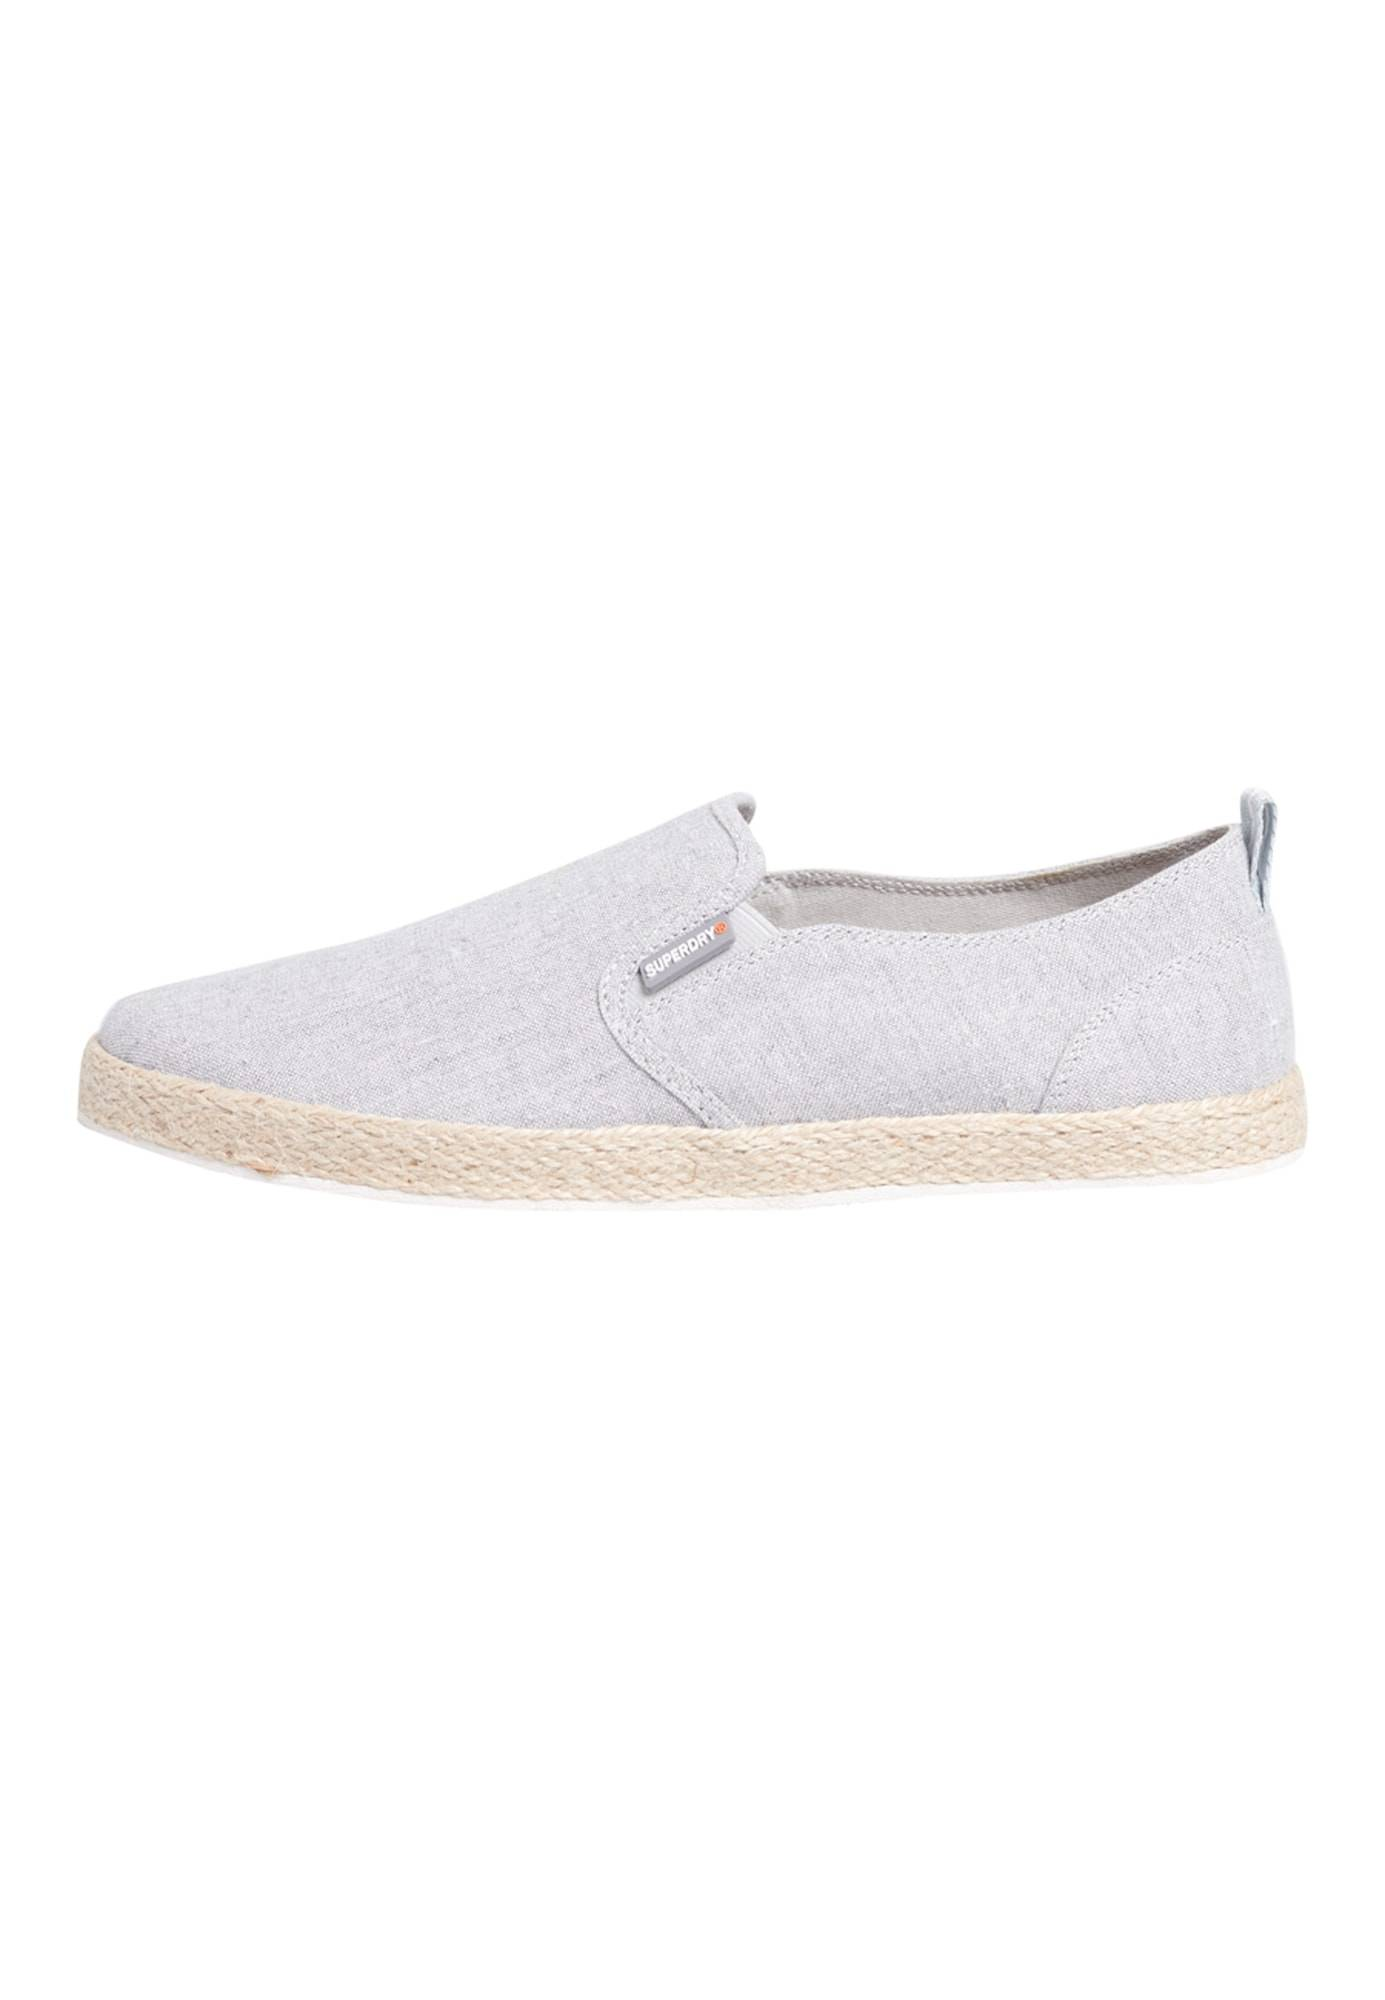 Superdry Espadrilles  - Gris - Taille: 43 - male